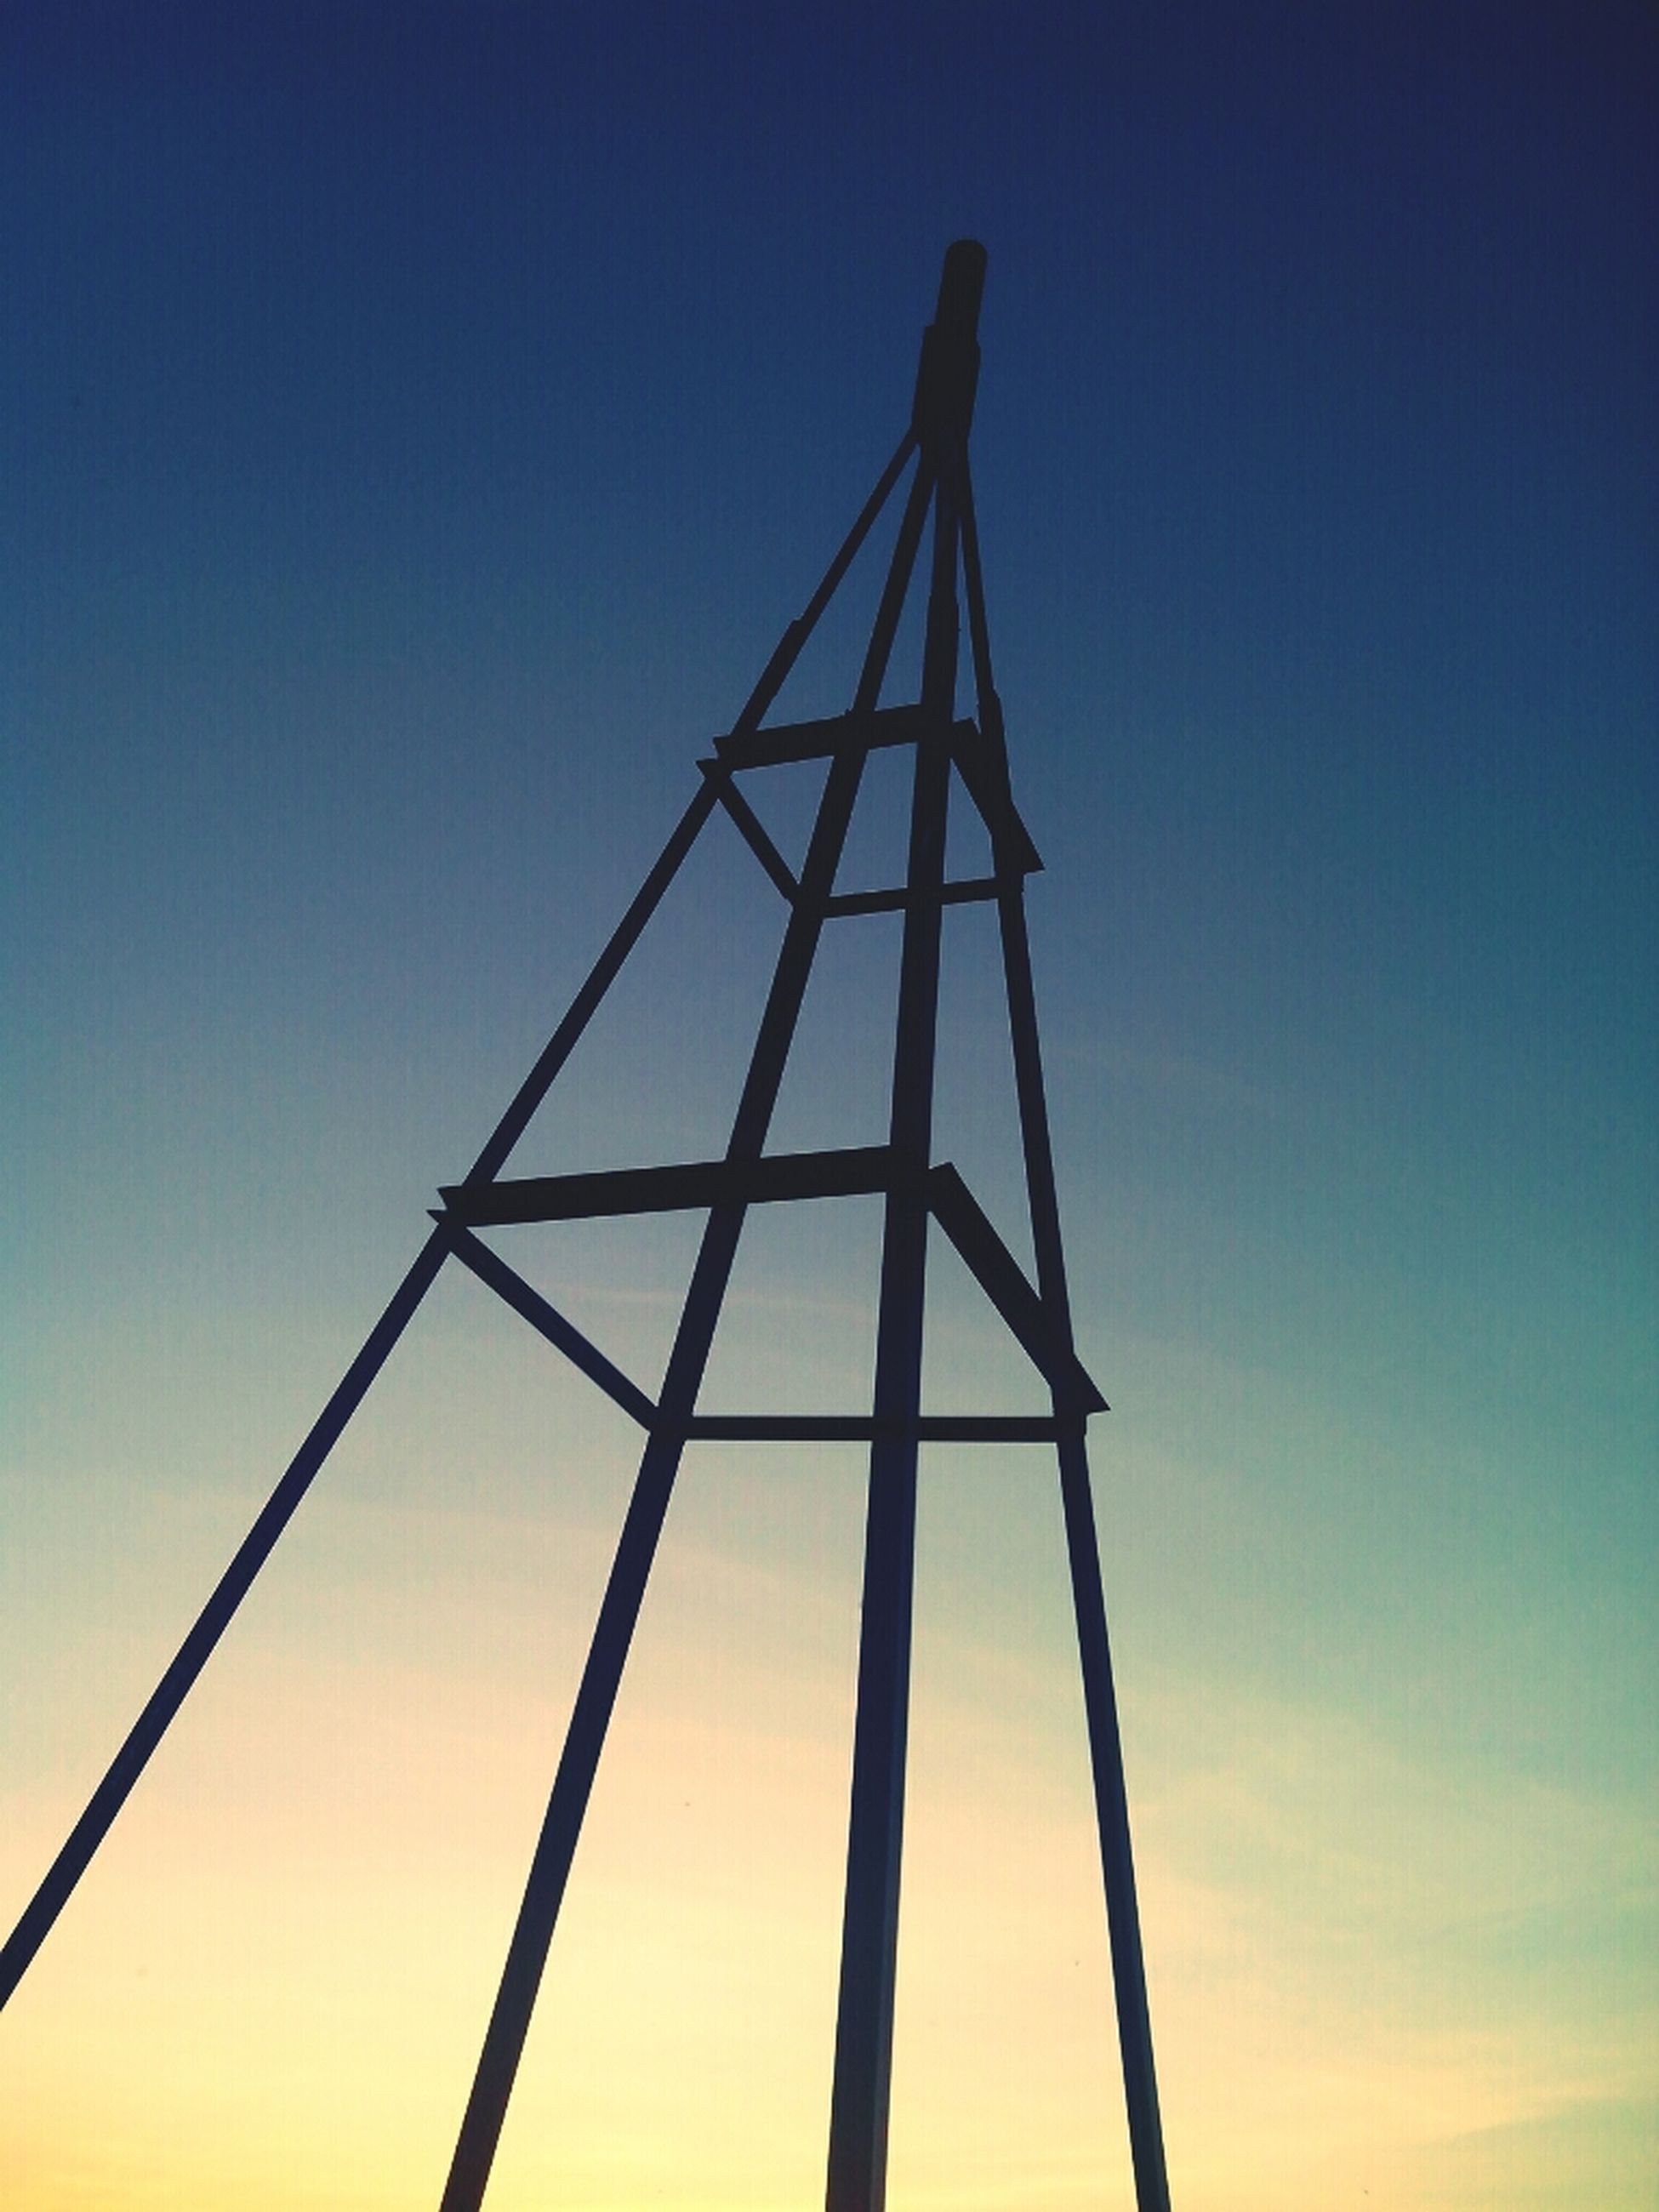 low angle view, sunset, clear sky, metal, blue, sky, fuel and power generation, connection, silhouette, technology, metallic, orange color, no people, electricity pylon, electricity, outdoors, copy space, construction site, power supply, nature